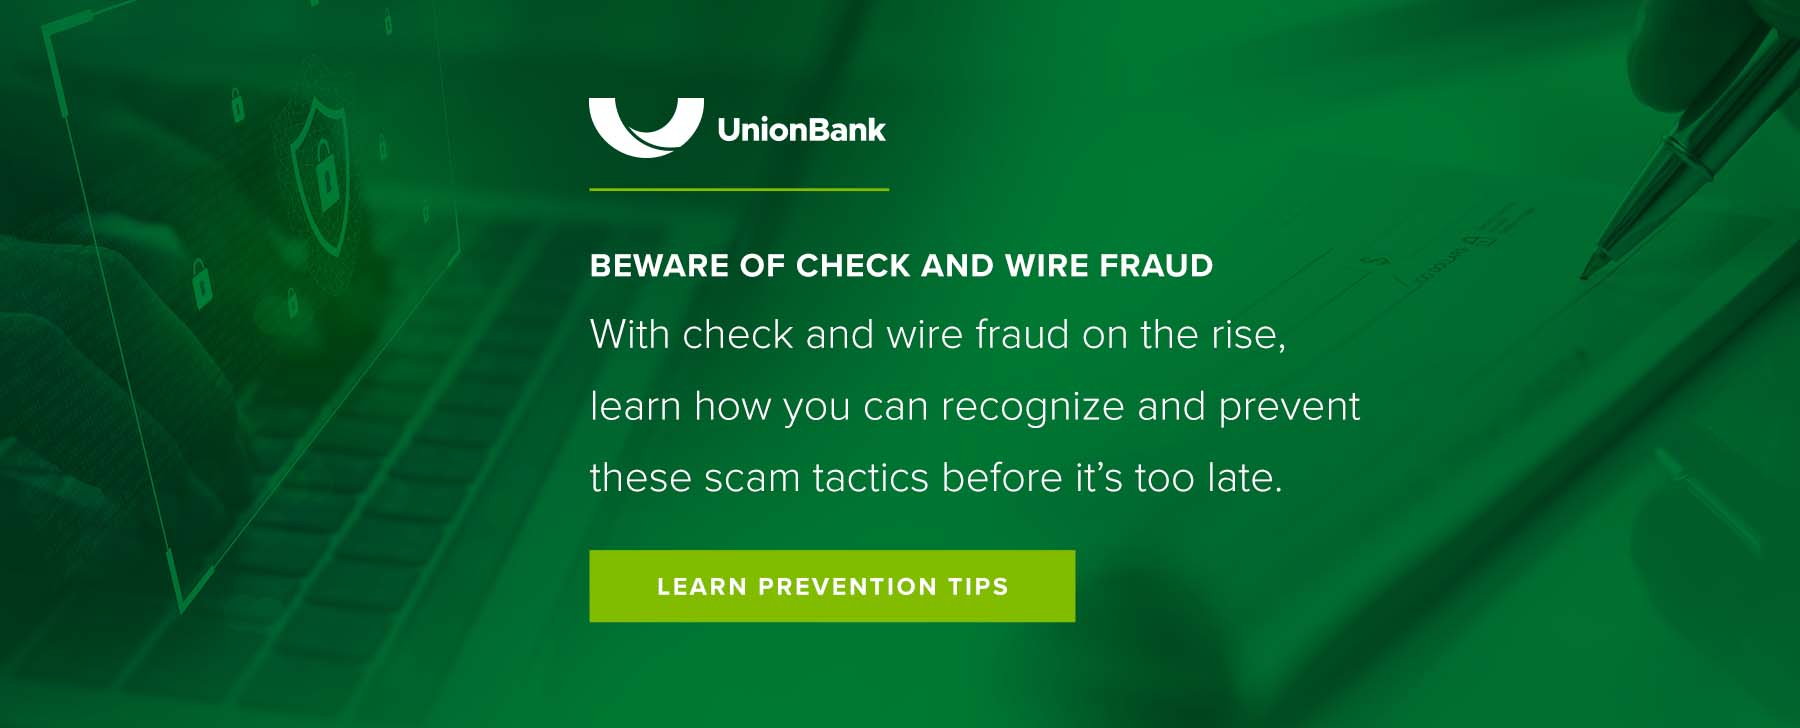 Beware of Check and Wire Fraud